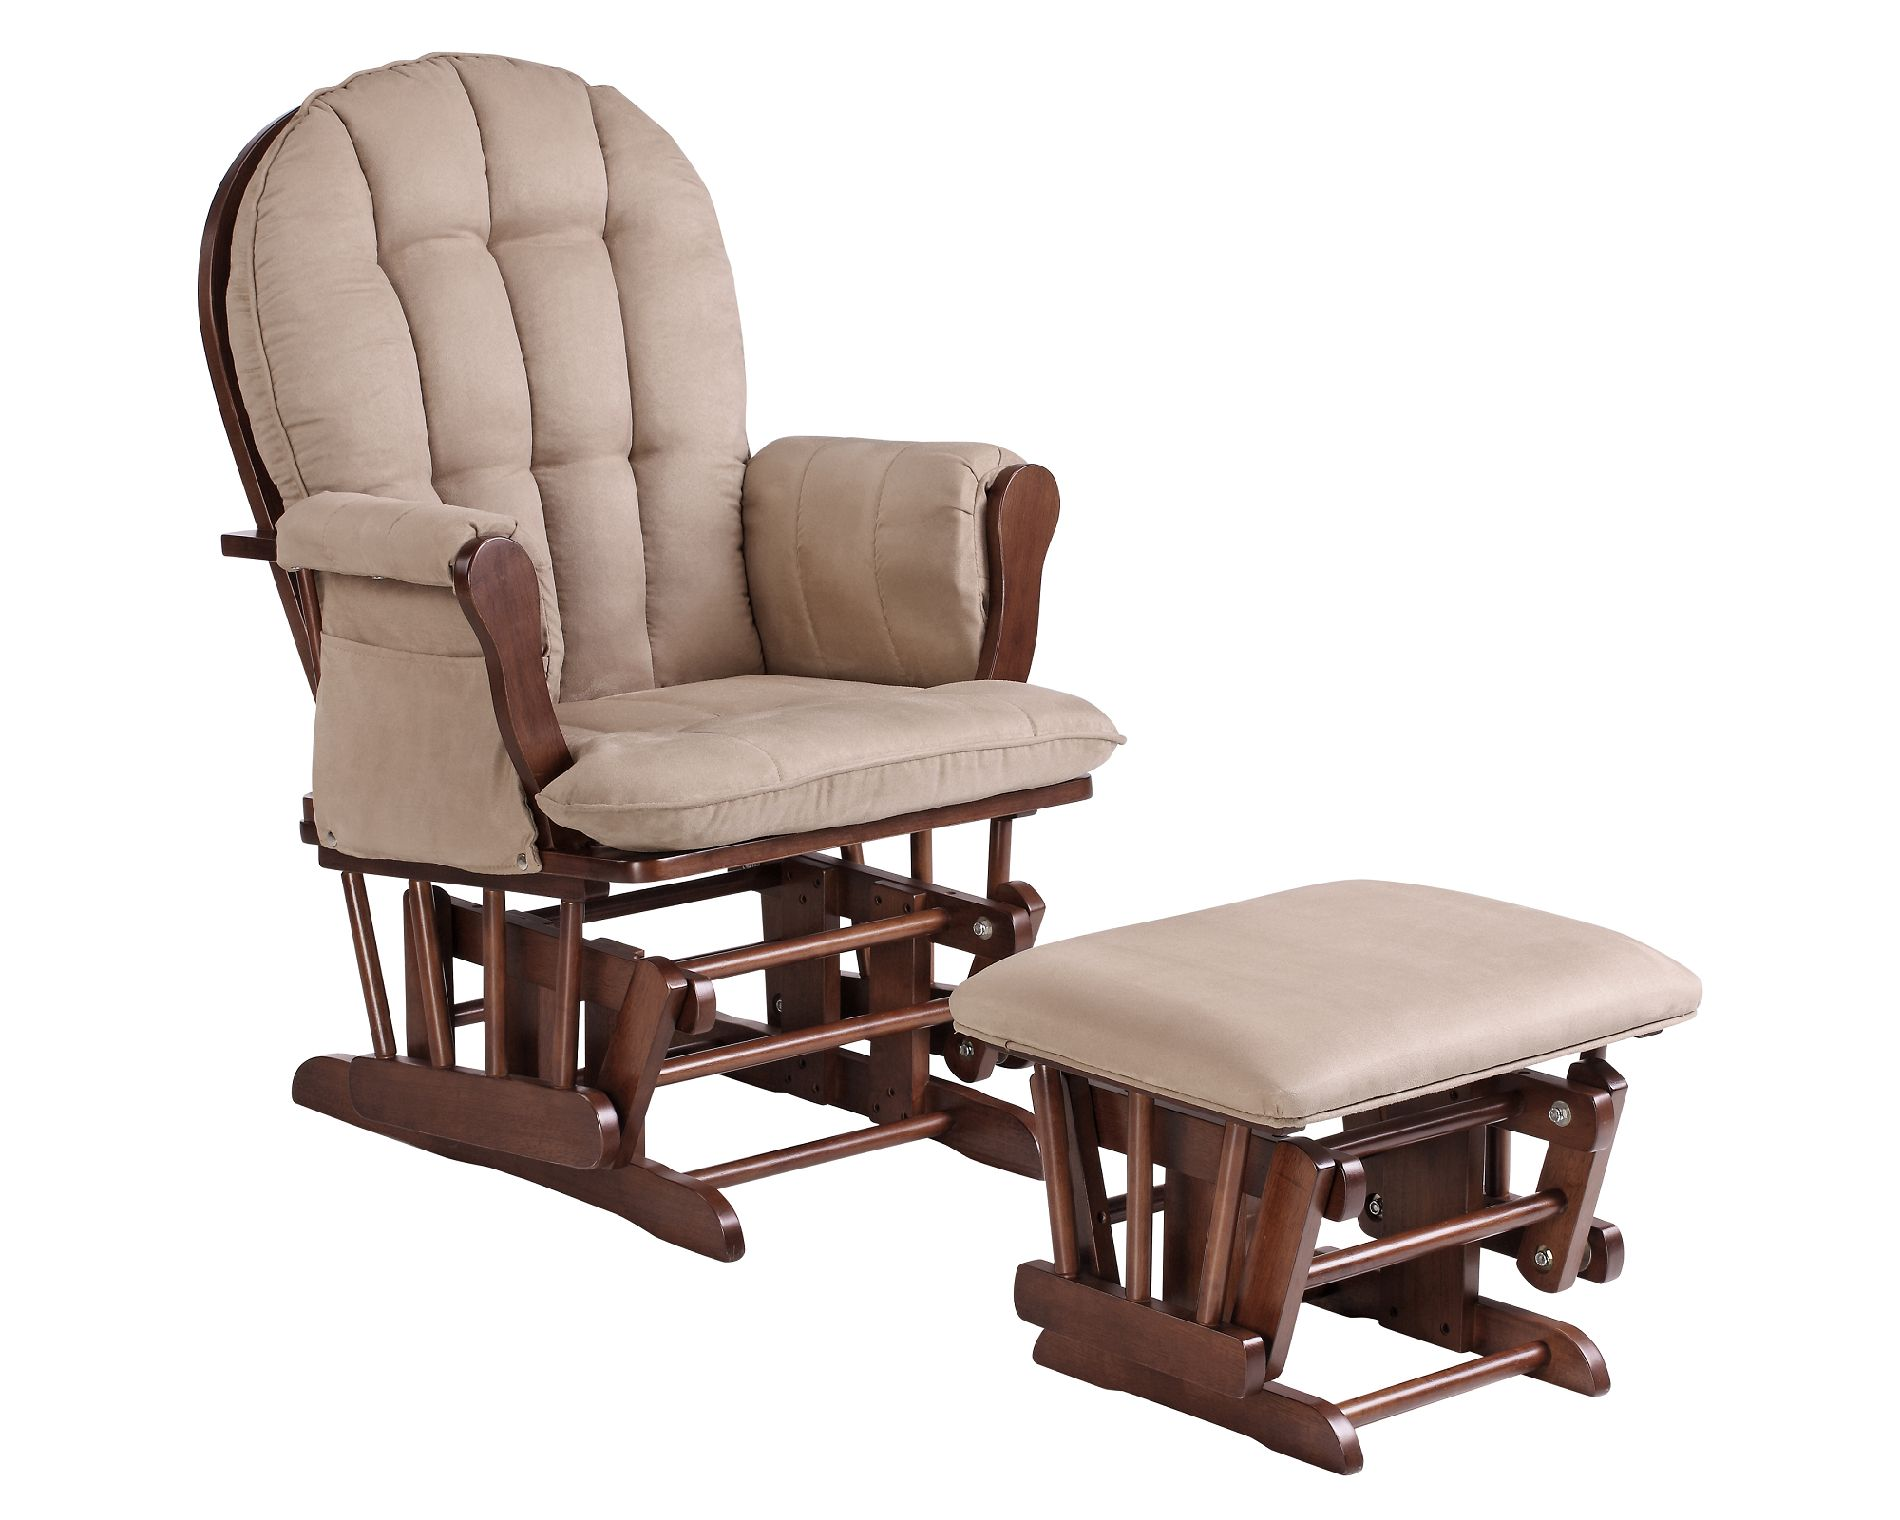 glider chair for nursery armless and a half rocker ottoman comfort style from sears